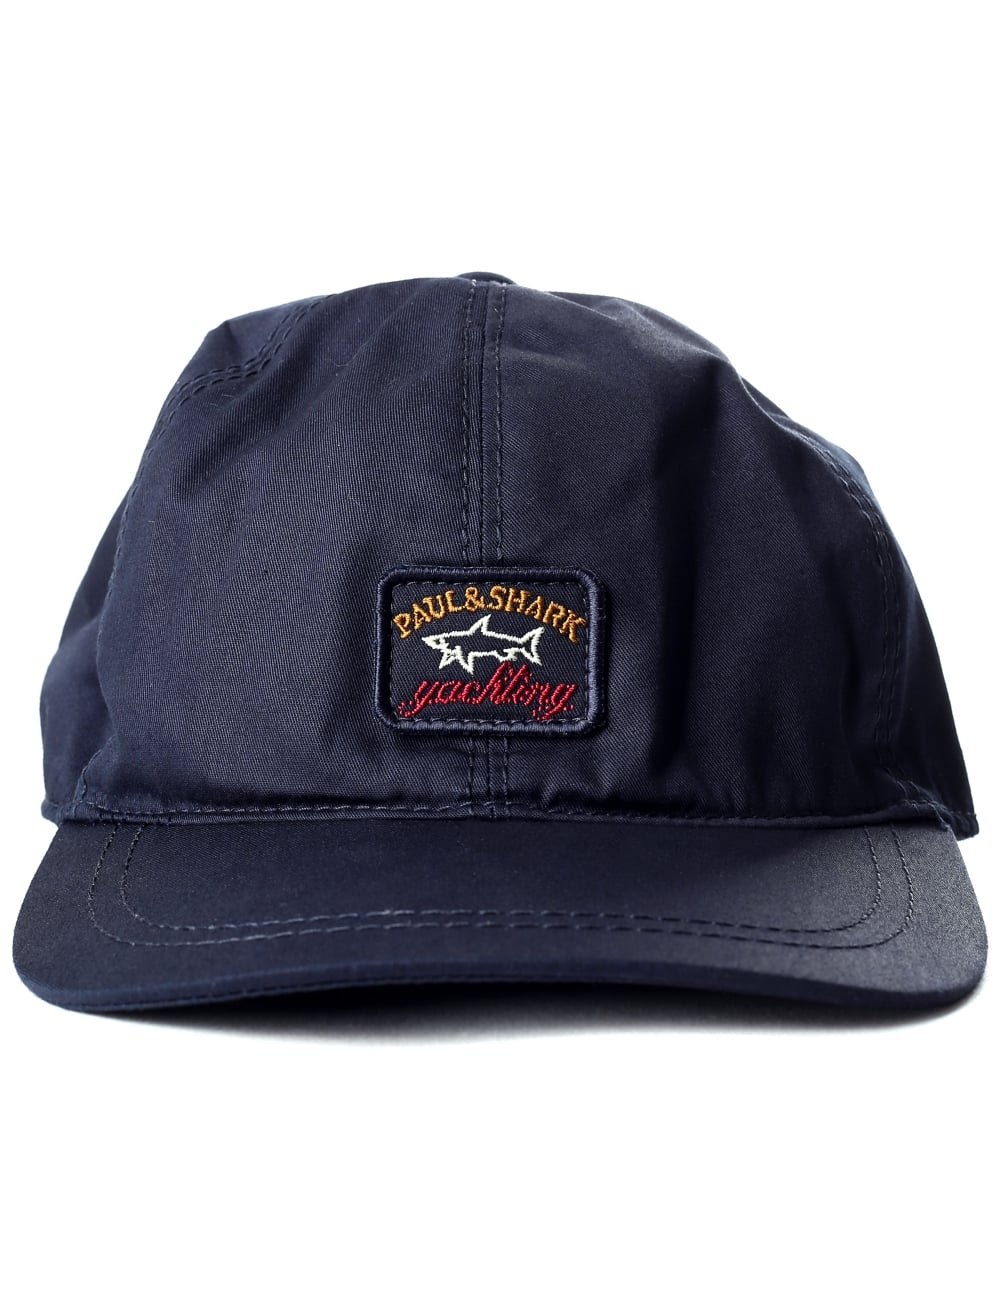 e36cb9b89d6 Paul   Shark Men s Woven Baseball Cap